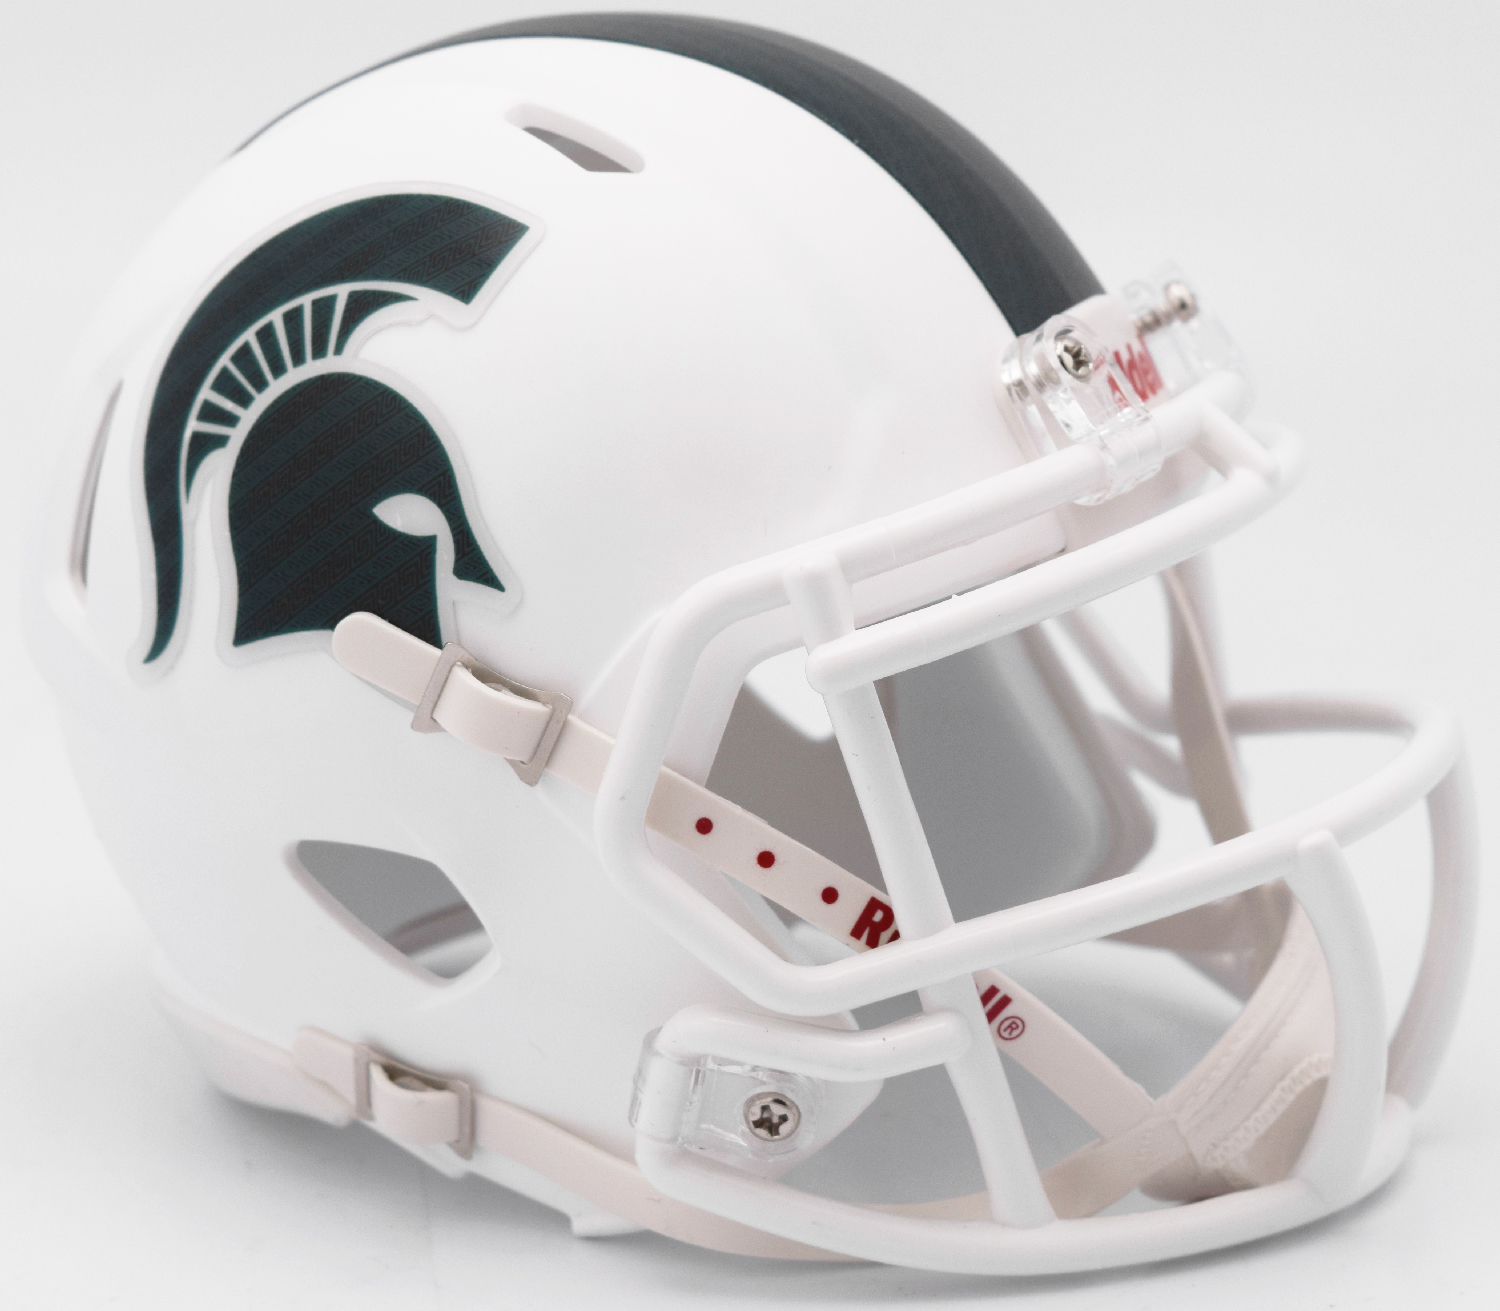 Michigan State Spartans NCAA Mini Speed Football Helmet <B>Matte White 2017 Alt</B>